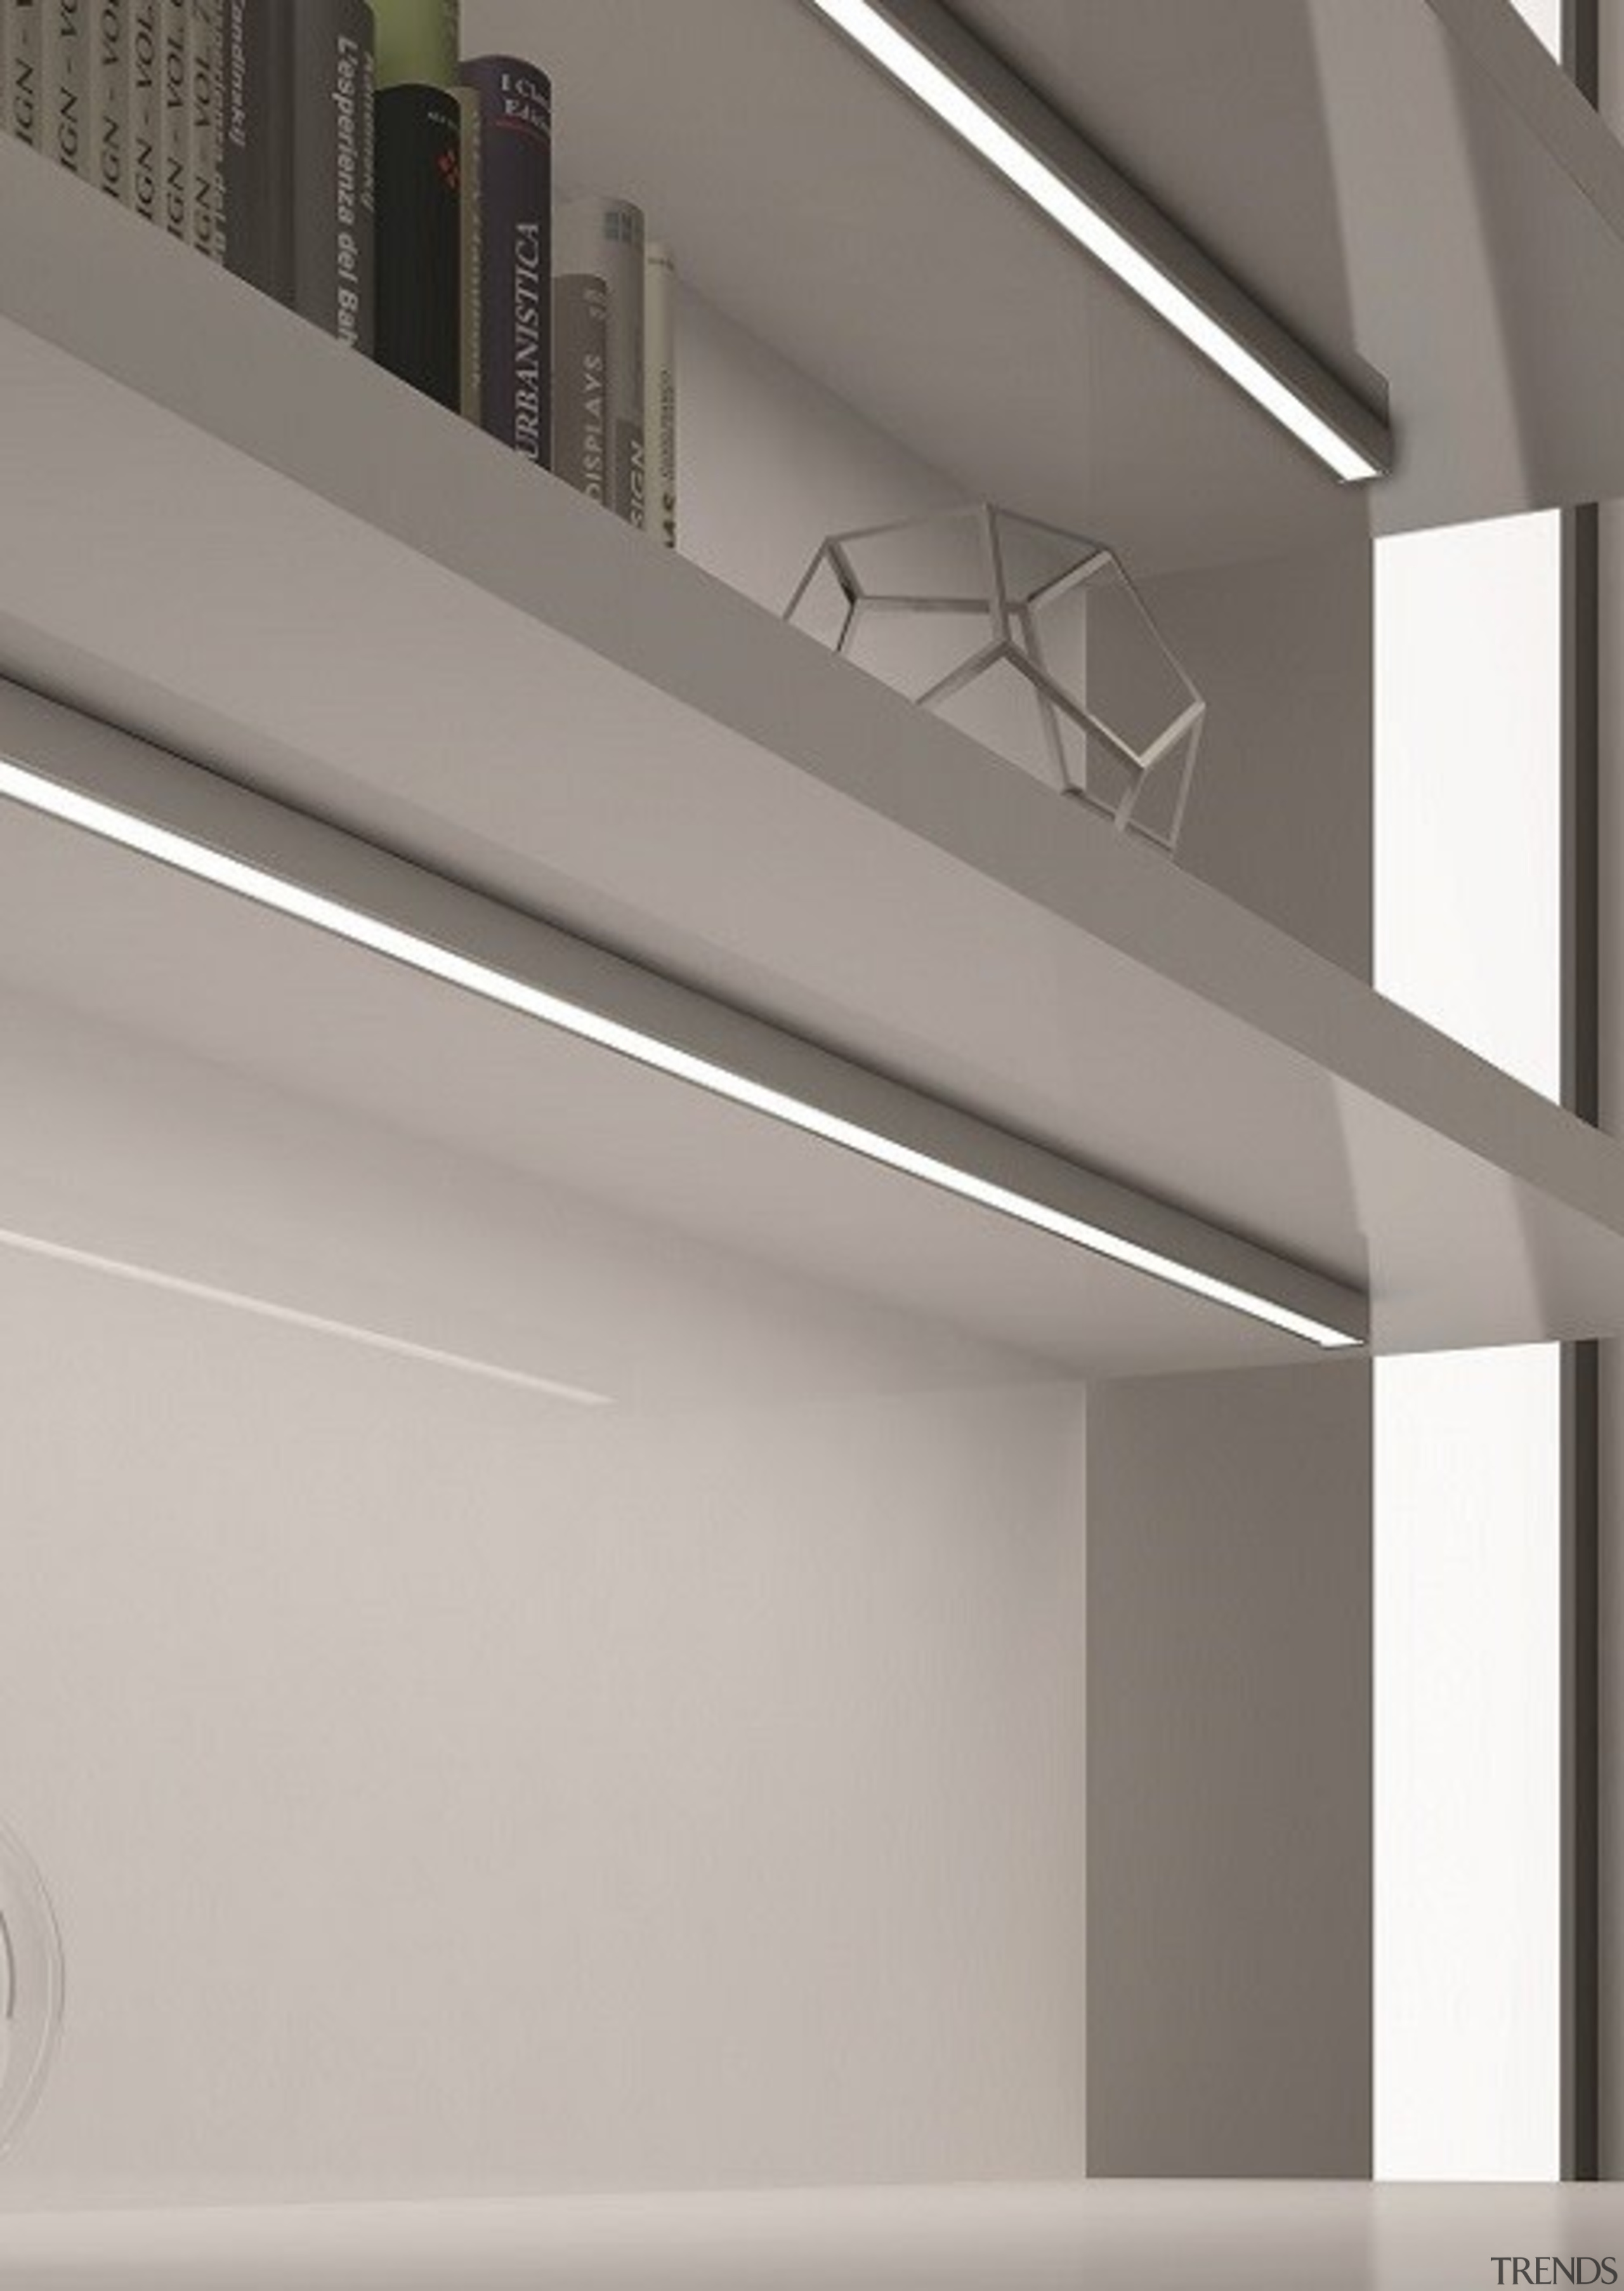 Domus Line Twig LED ProfileDesigned in Italy to angle, architecture, ceiling, daylighting, lighting, line, product design, structure, gray